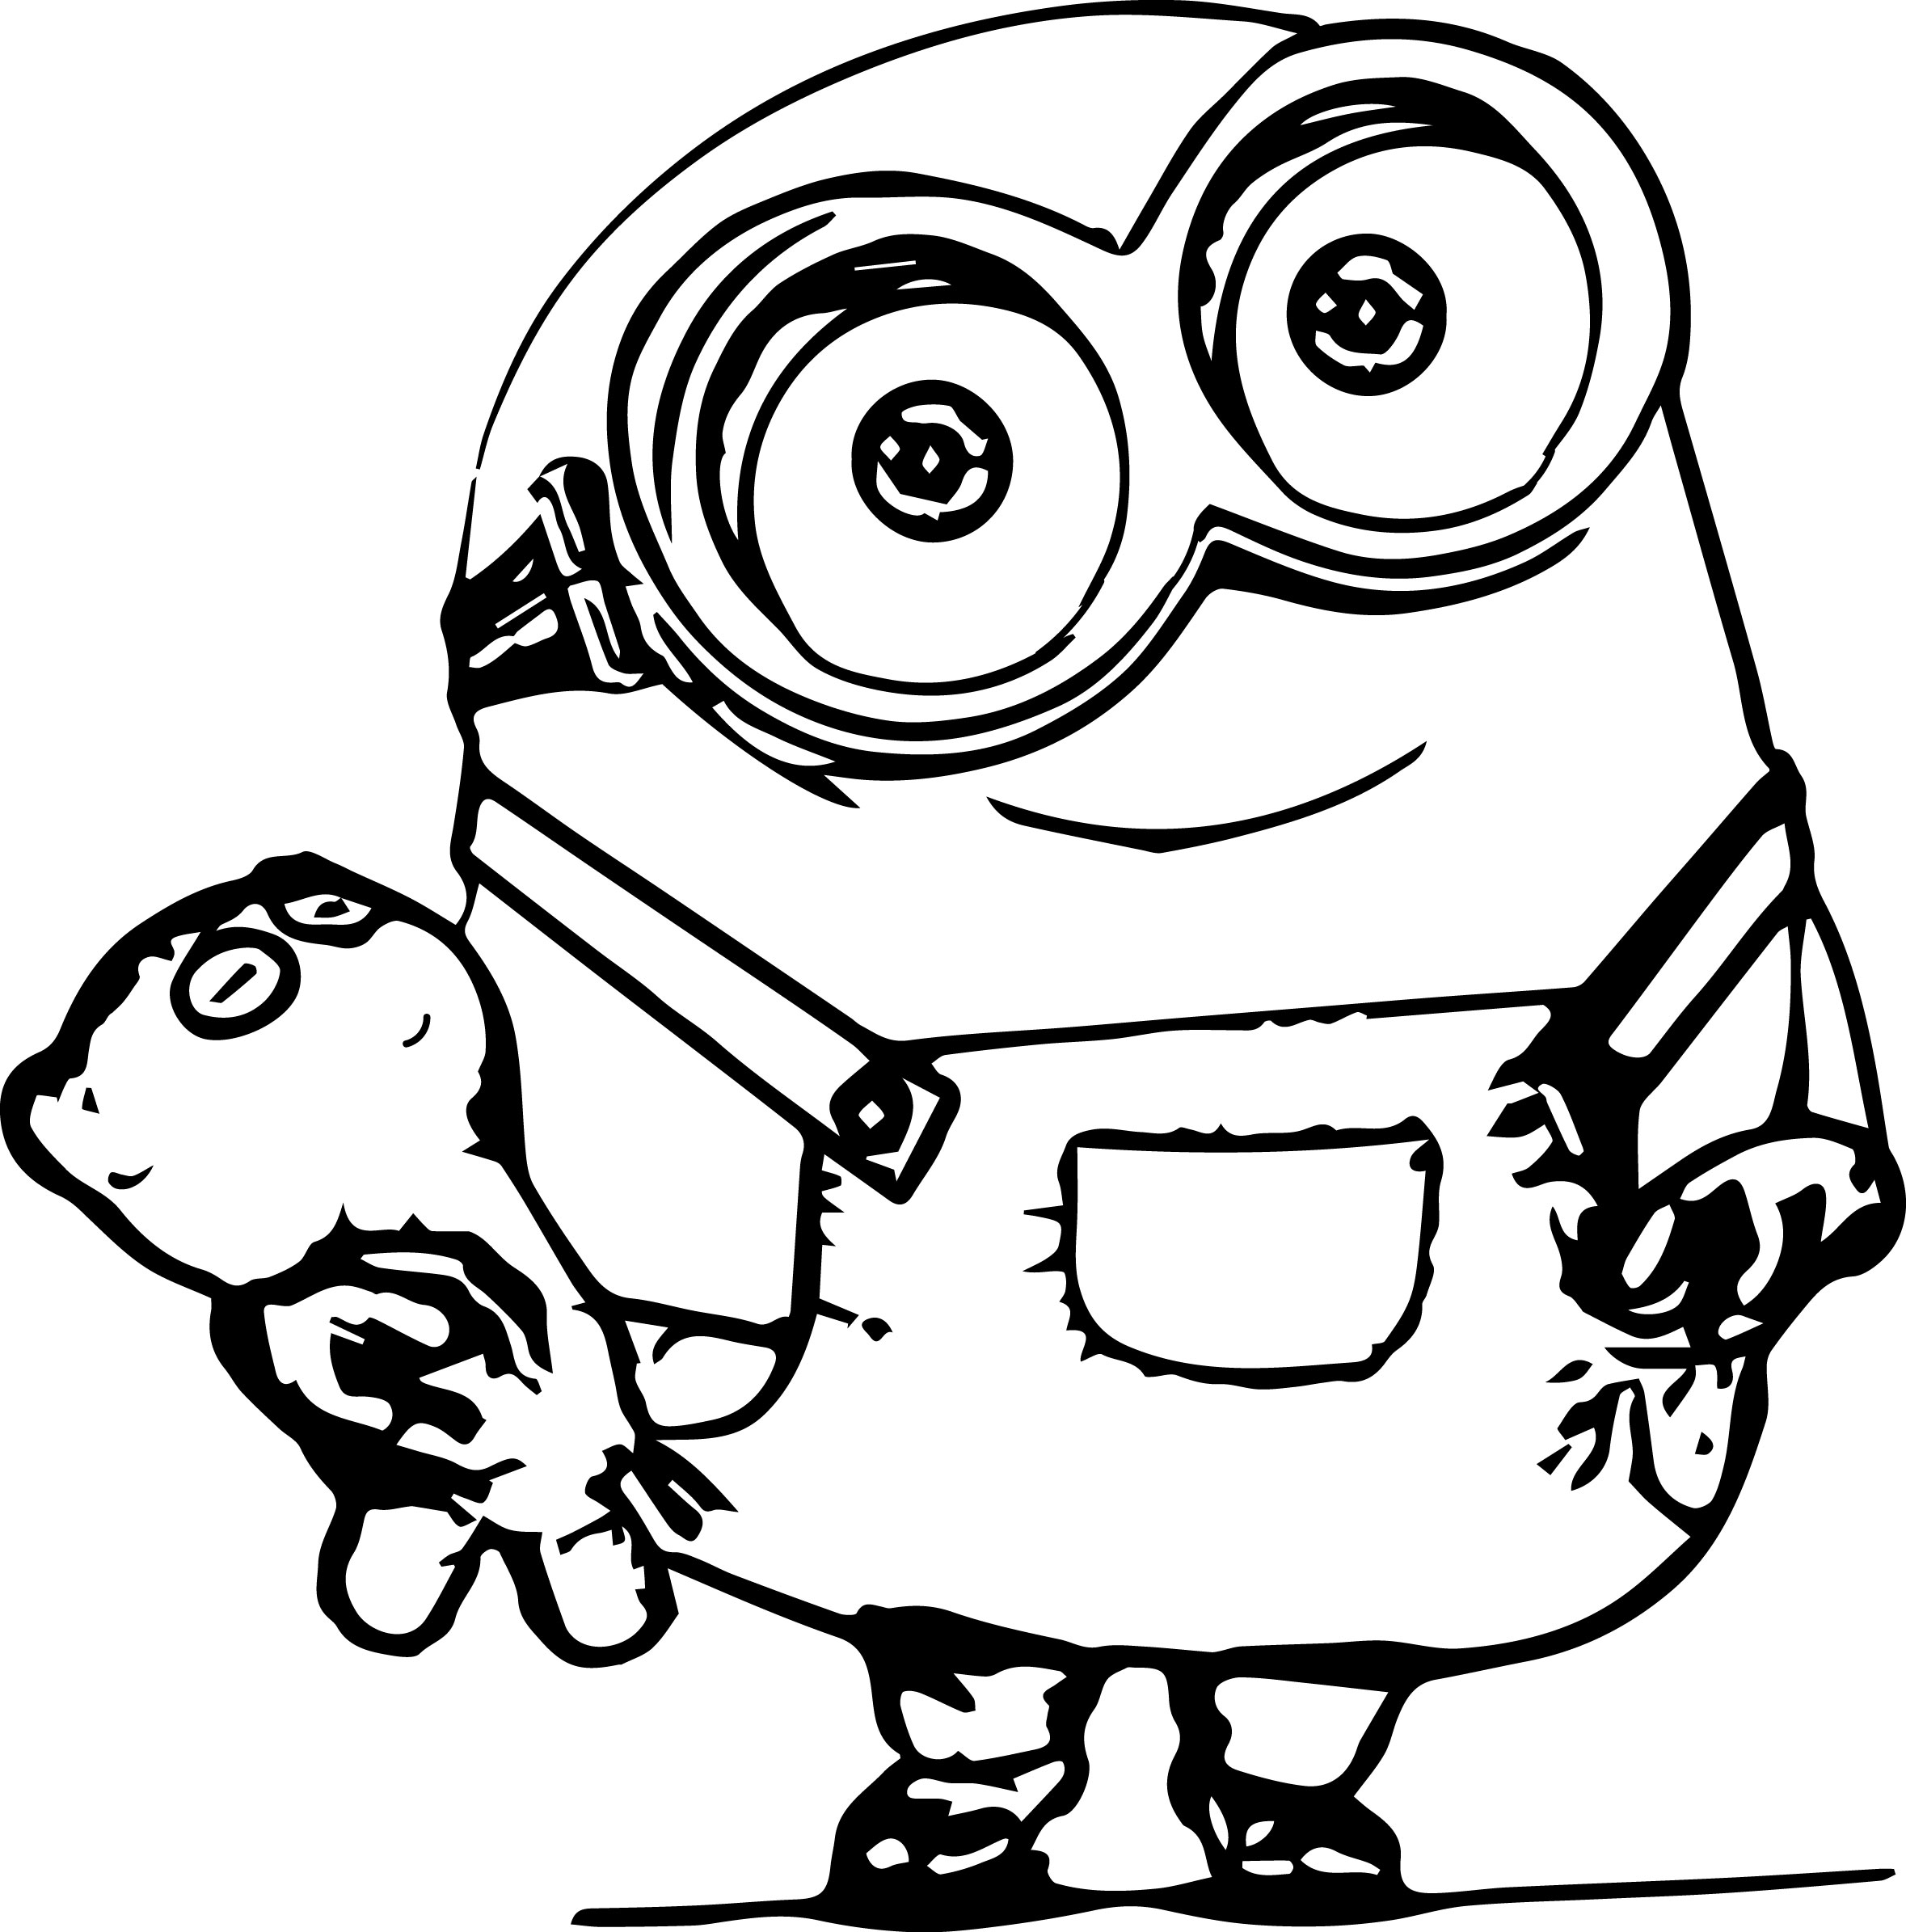 minion coloring pages minion coloring page - Coloring Pics For Kids